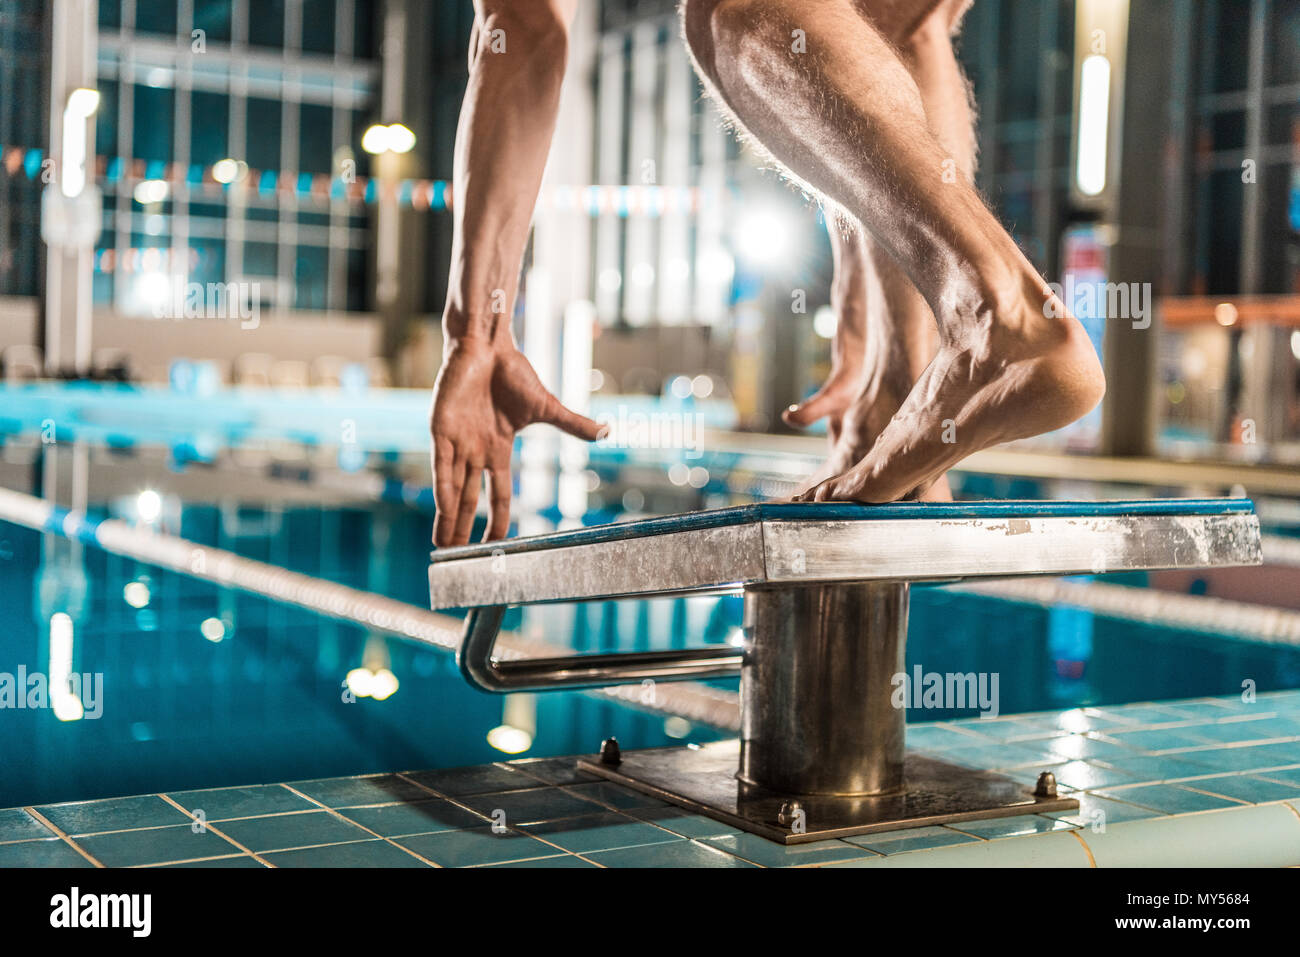 cropped view of swimmer standing on diving board ready to jump into competition swimming pool - Stock Image